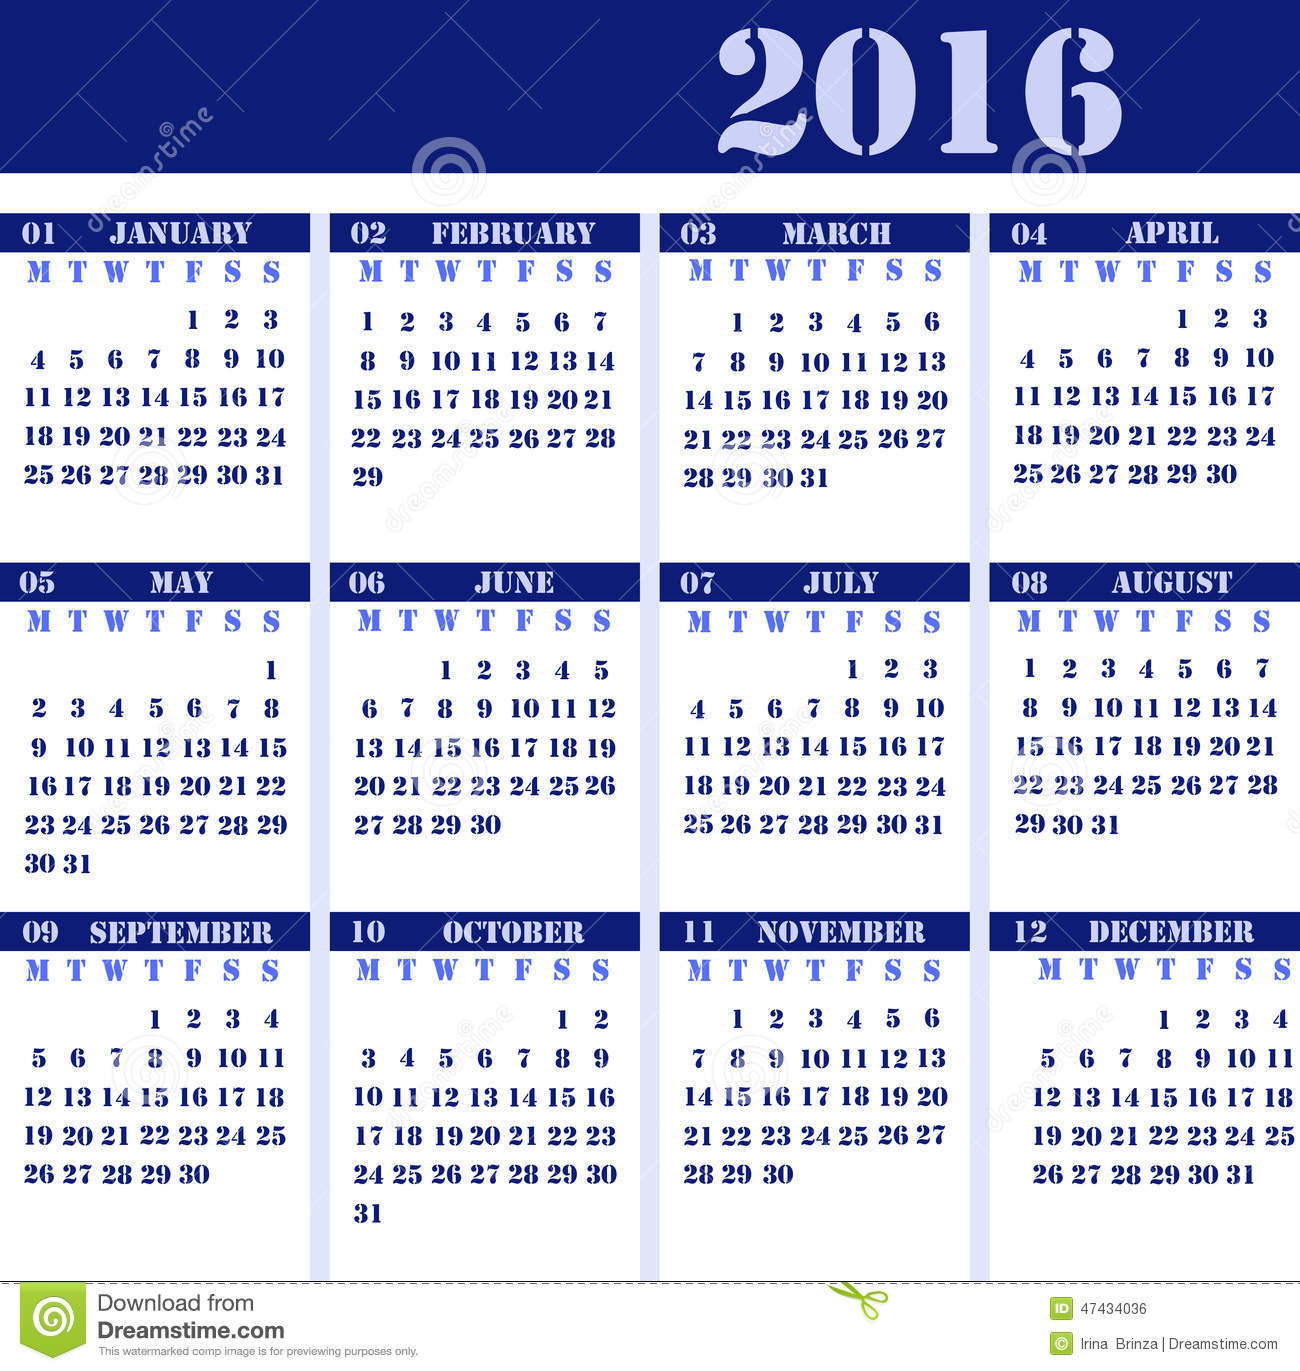 Calendar For The Year 2016 Stock Illustration - Image: 47434036